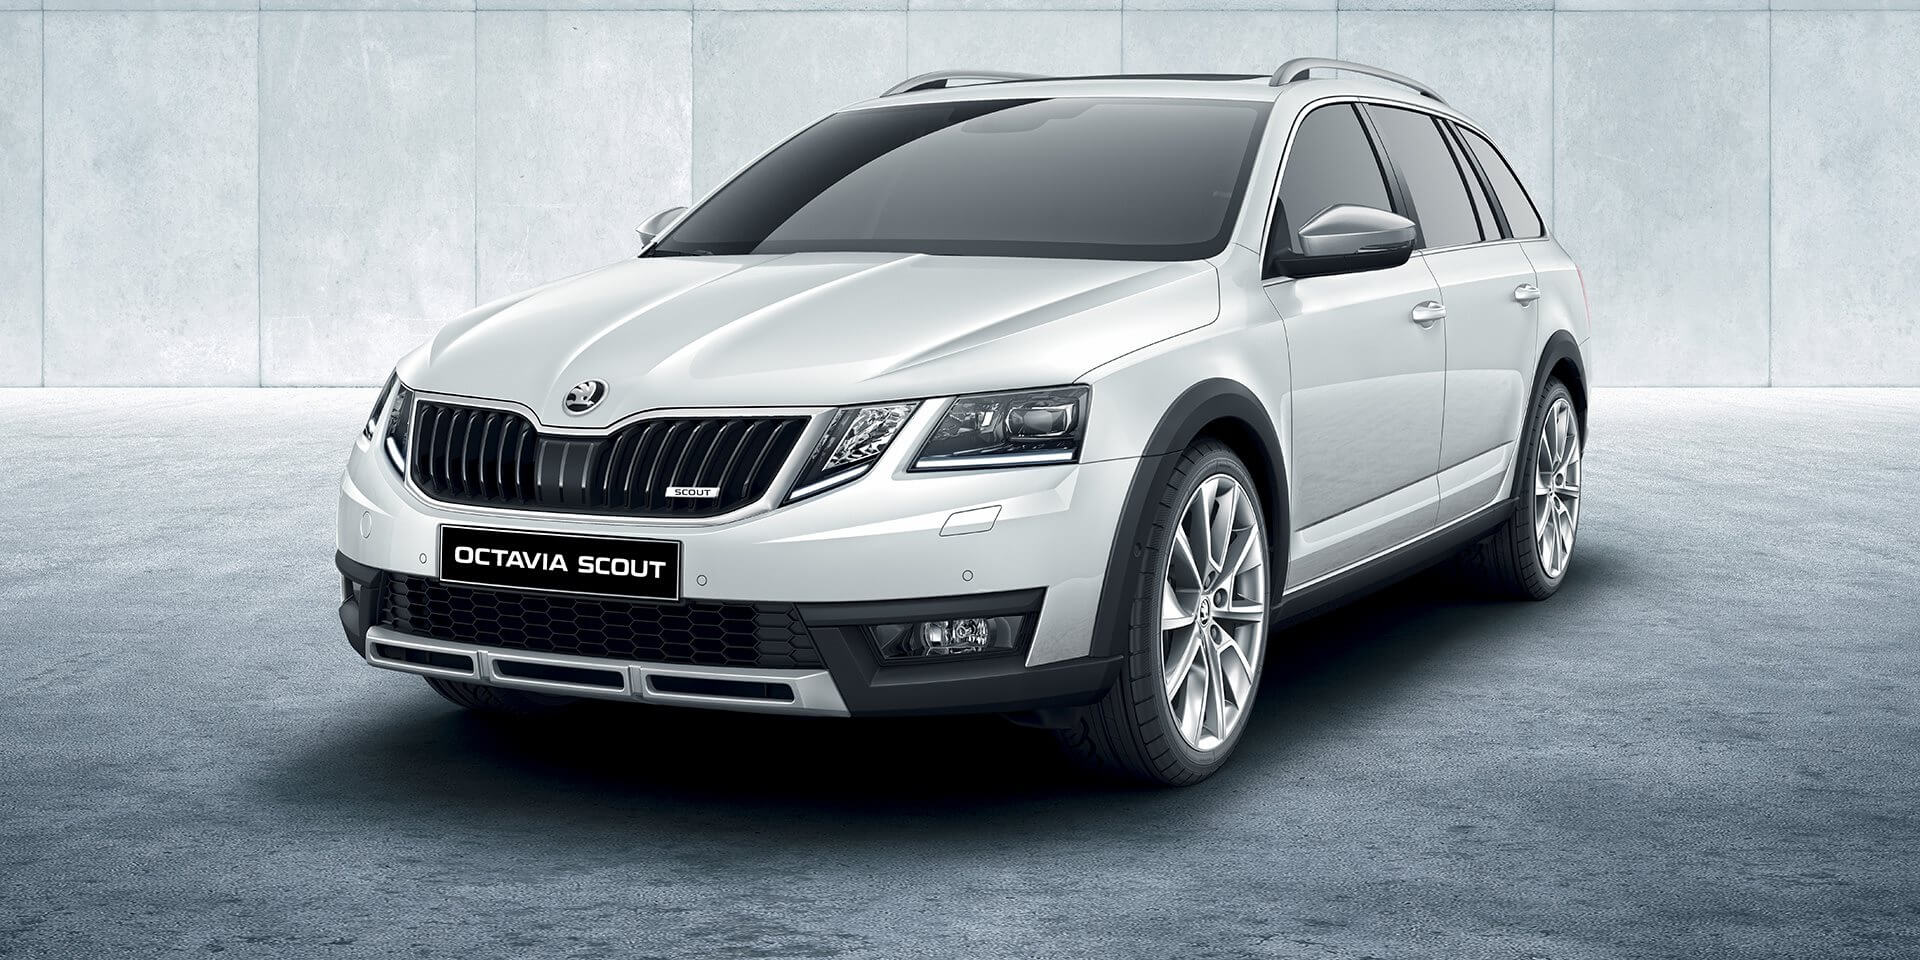 skoda octavia scout leasing f r 199 euro im monat netto. Black Bedroom Furniture Sets. Home Design Ideas